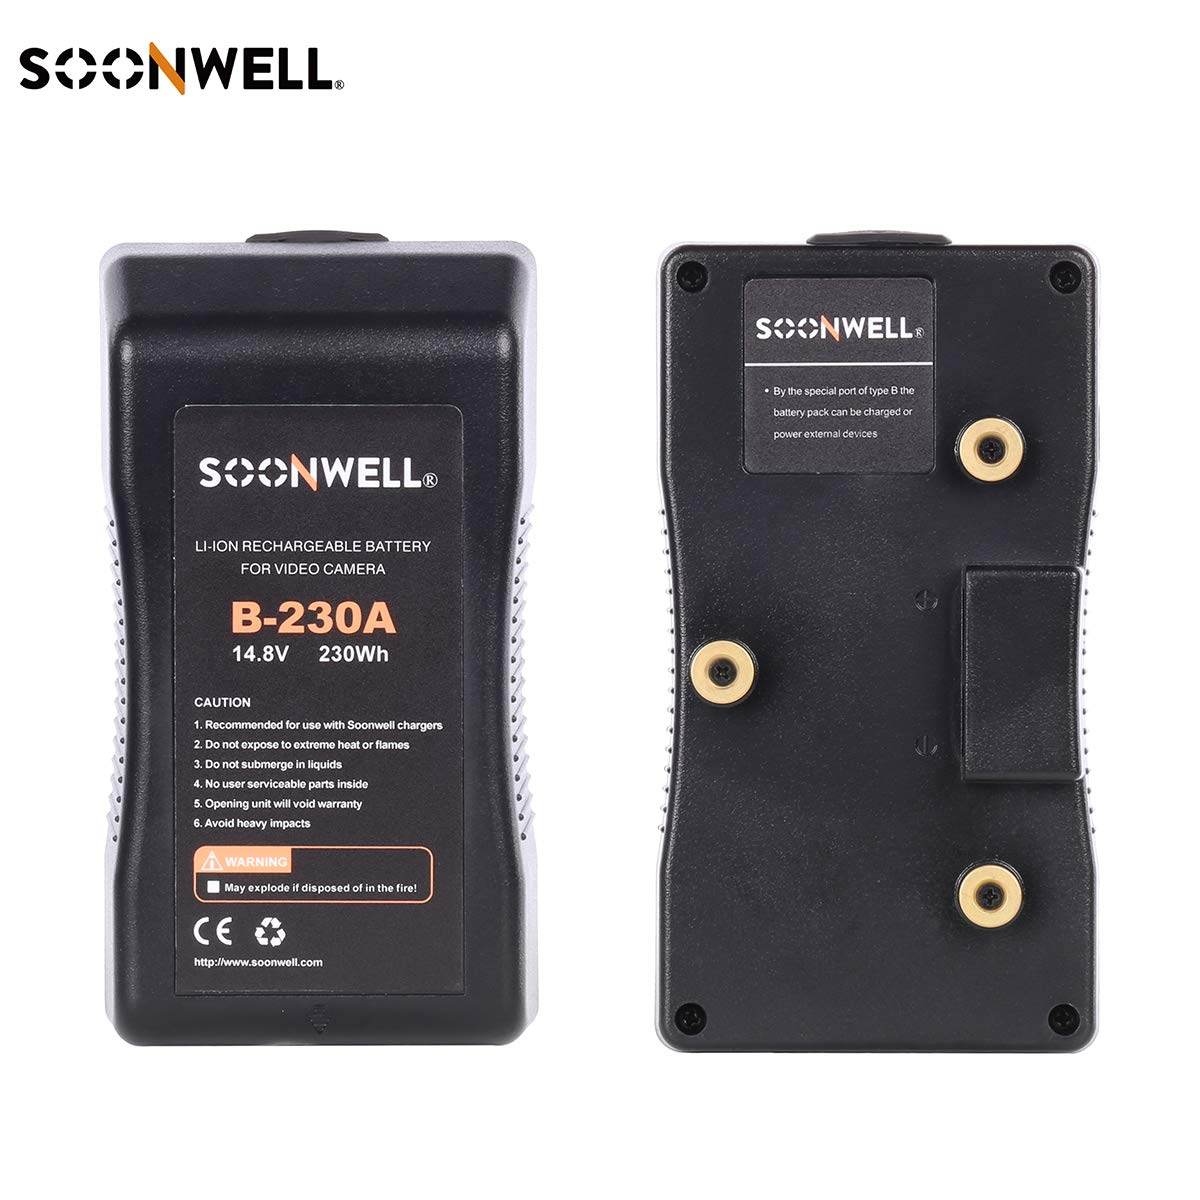 SOONWELL 230Wh 14.8V Anton Bauer Mount Li-ion Battery Rechargeable A Mount Spare Battery DSLR Camera, LED Light, Monitor by SOONWELL